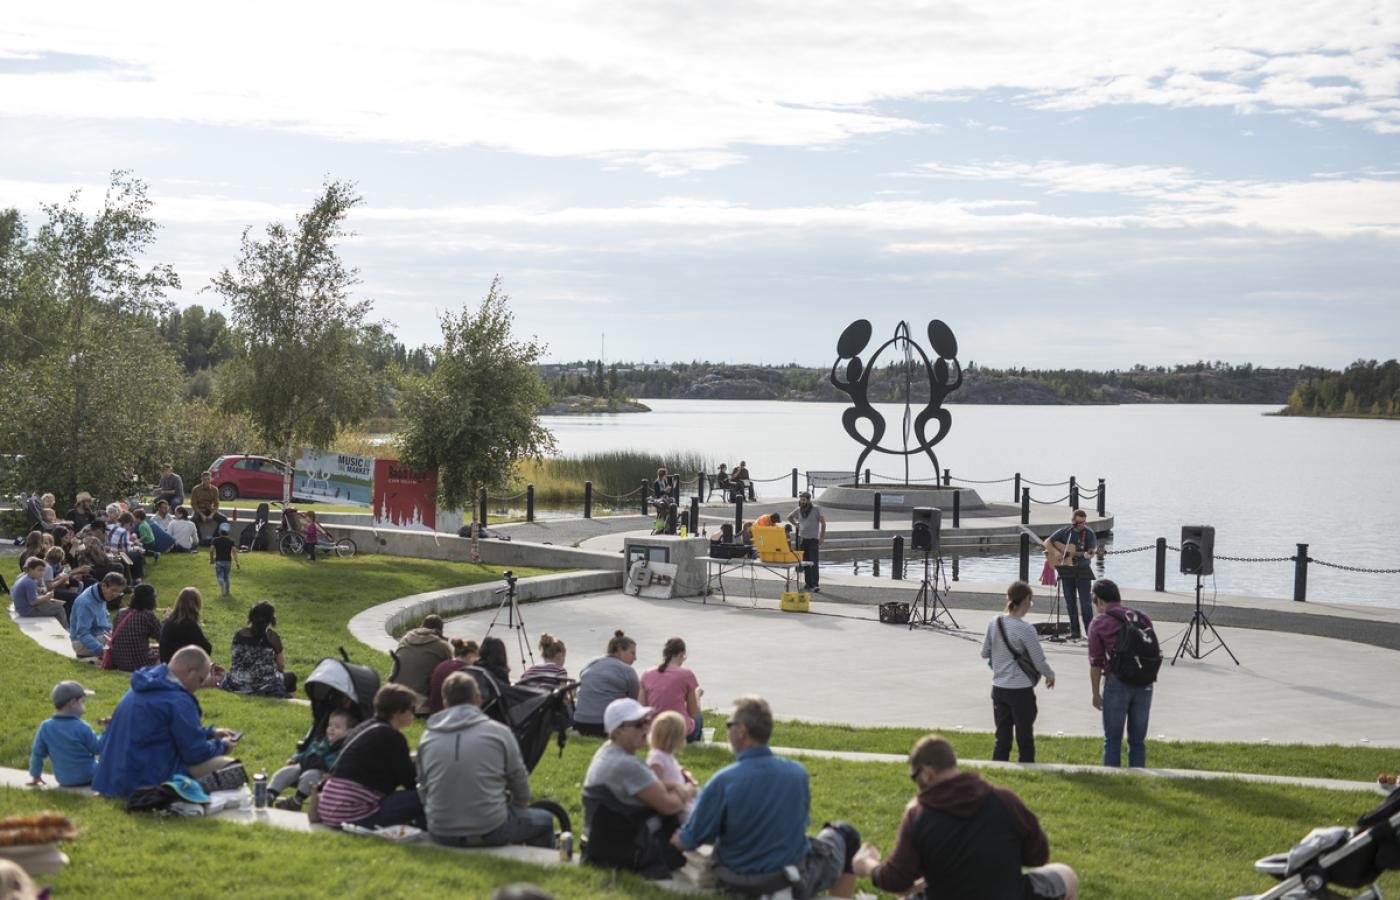 a crowd watches a musician play in Sombe K'e park in Yellowknife